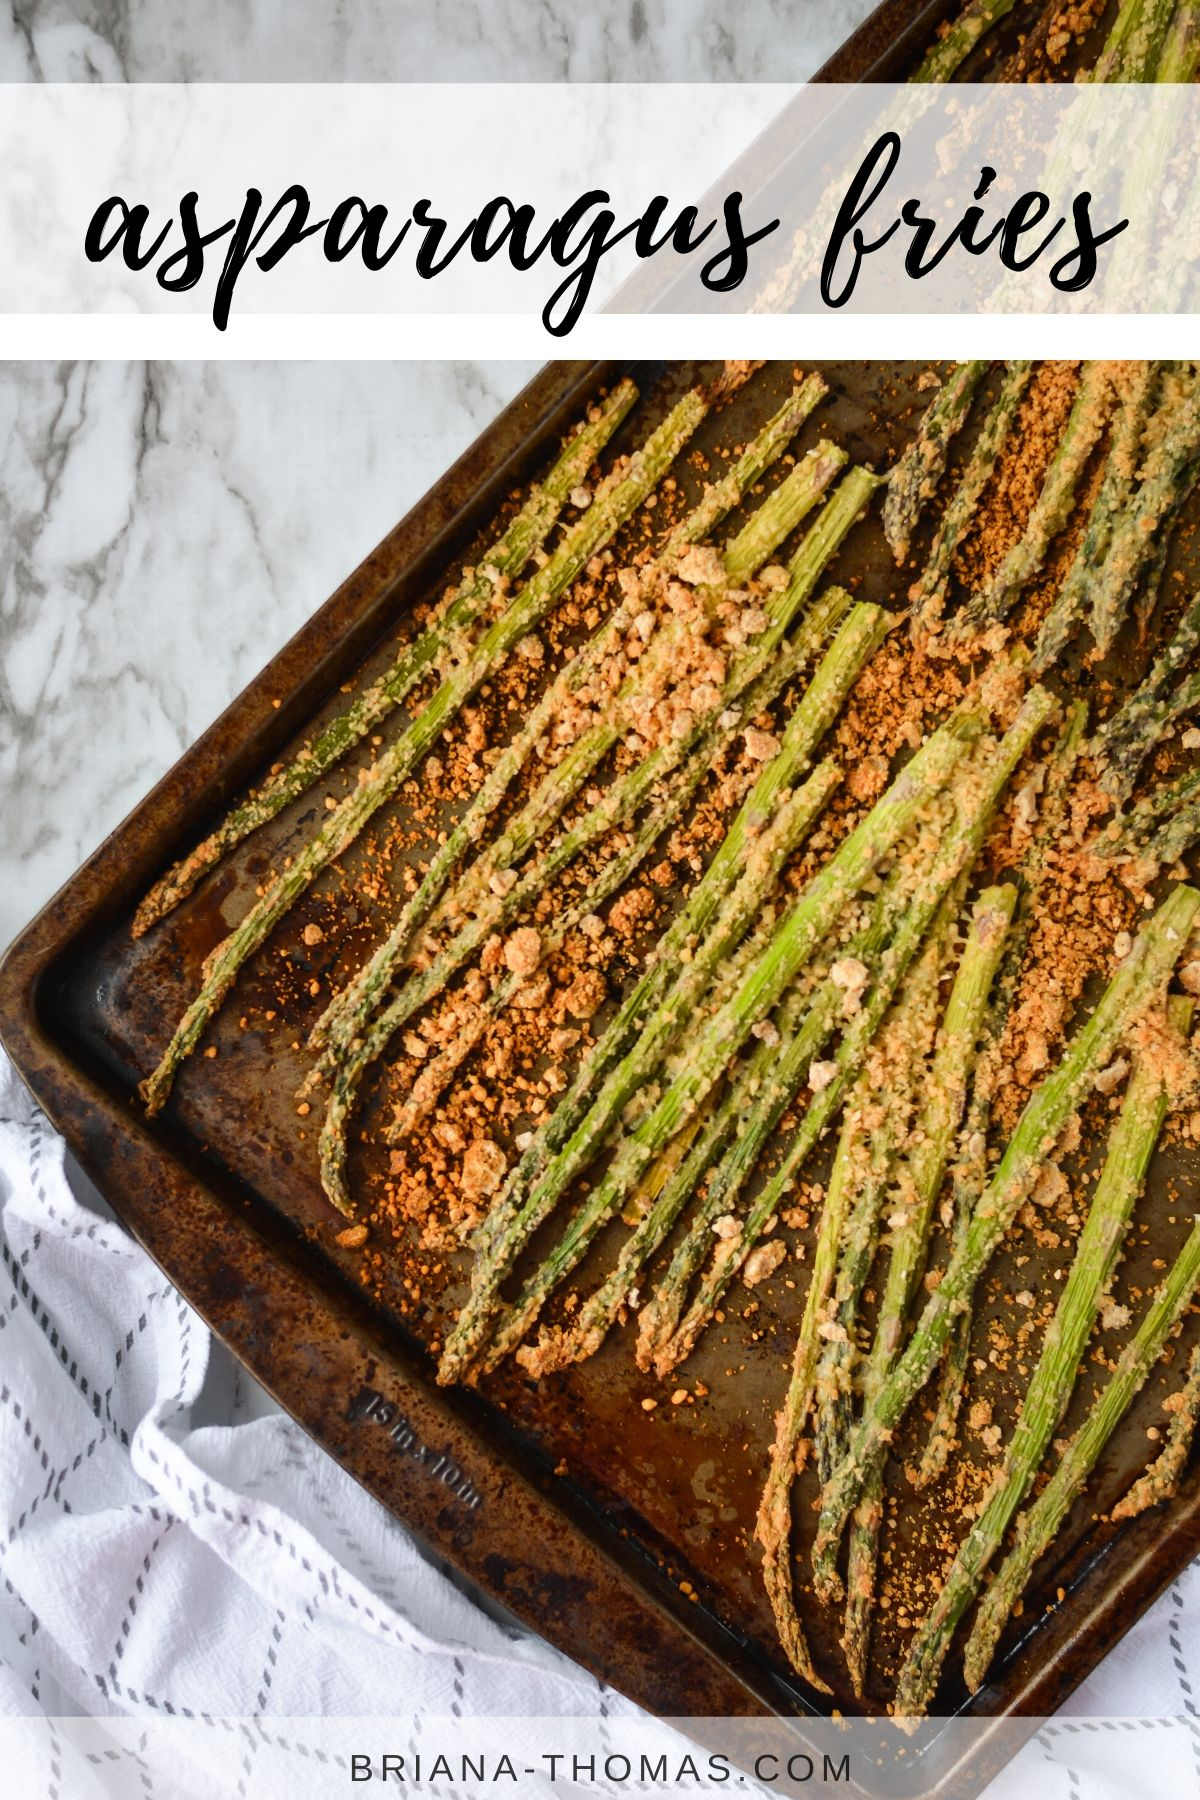 baked asparagus spears coated in crumb mixture on sheet pan